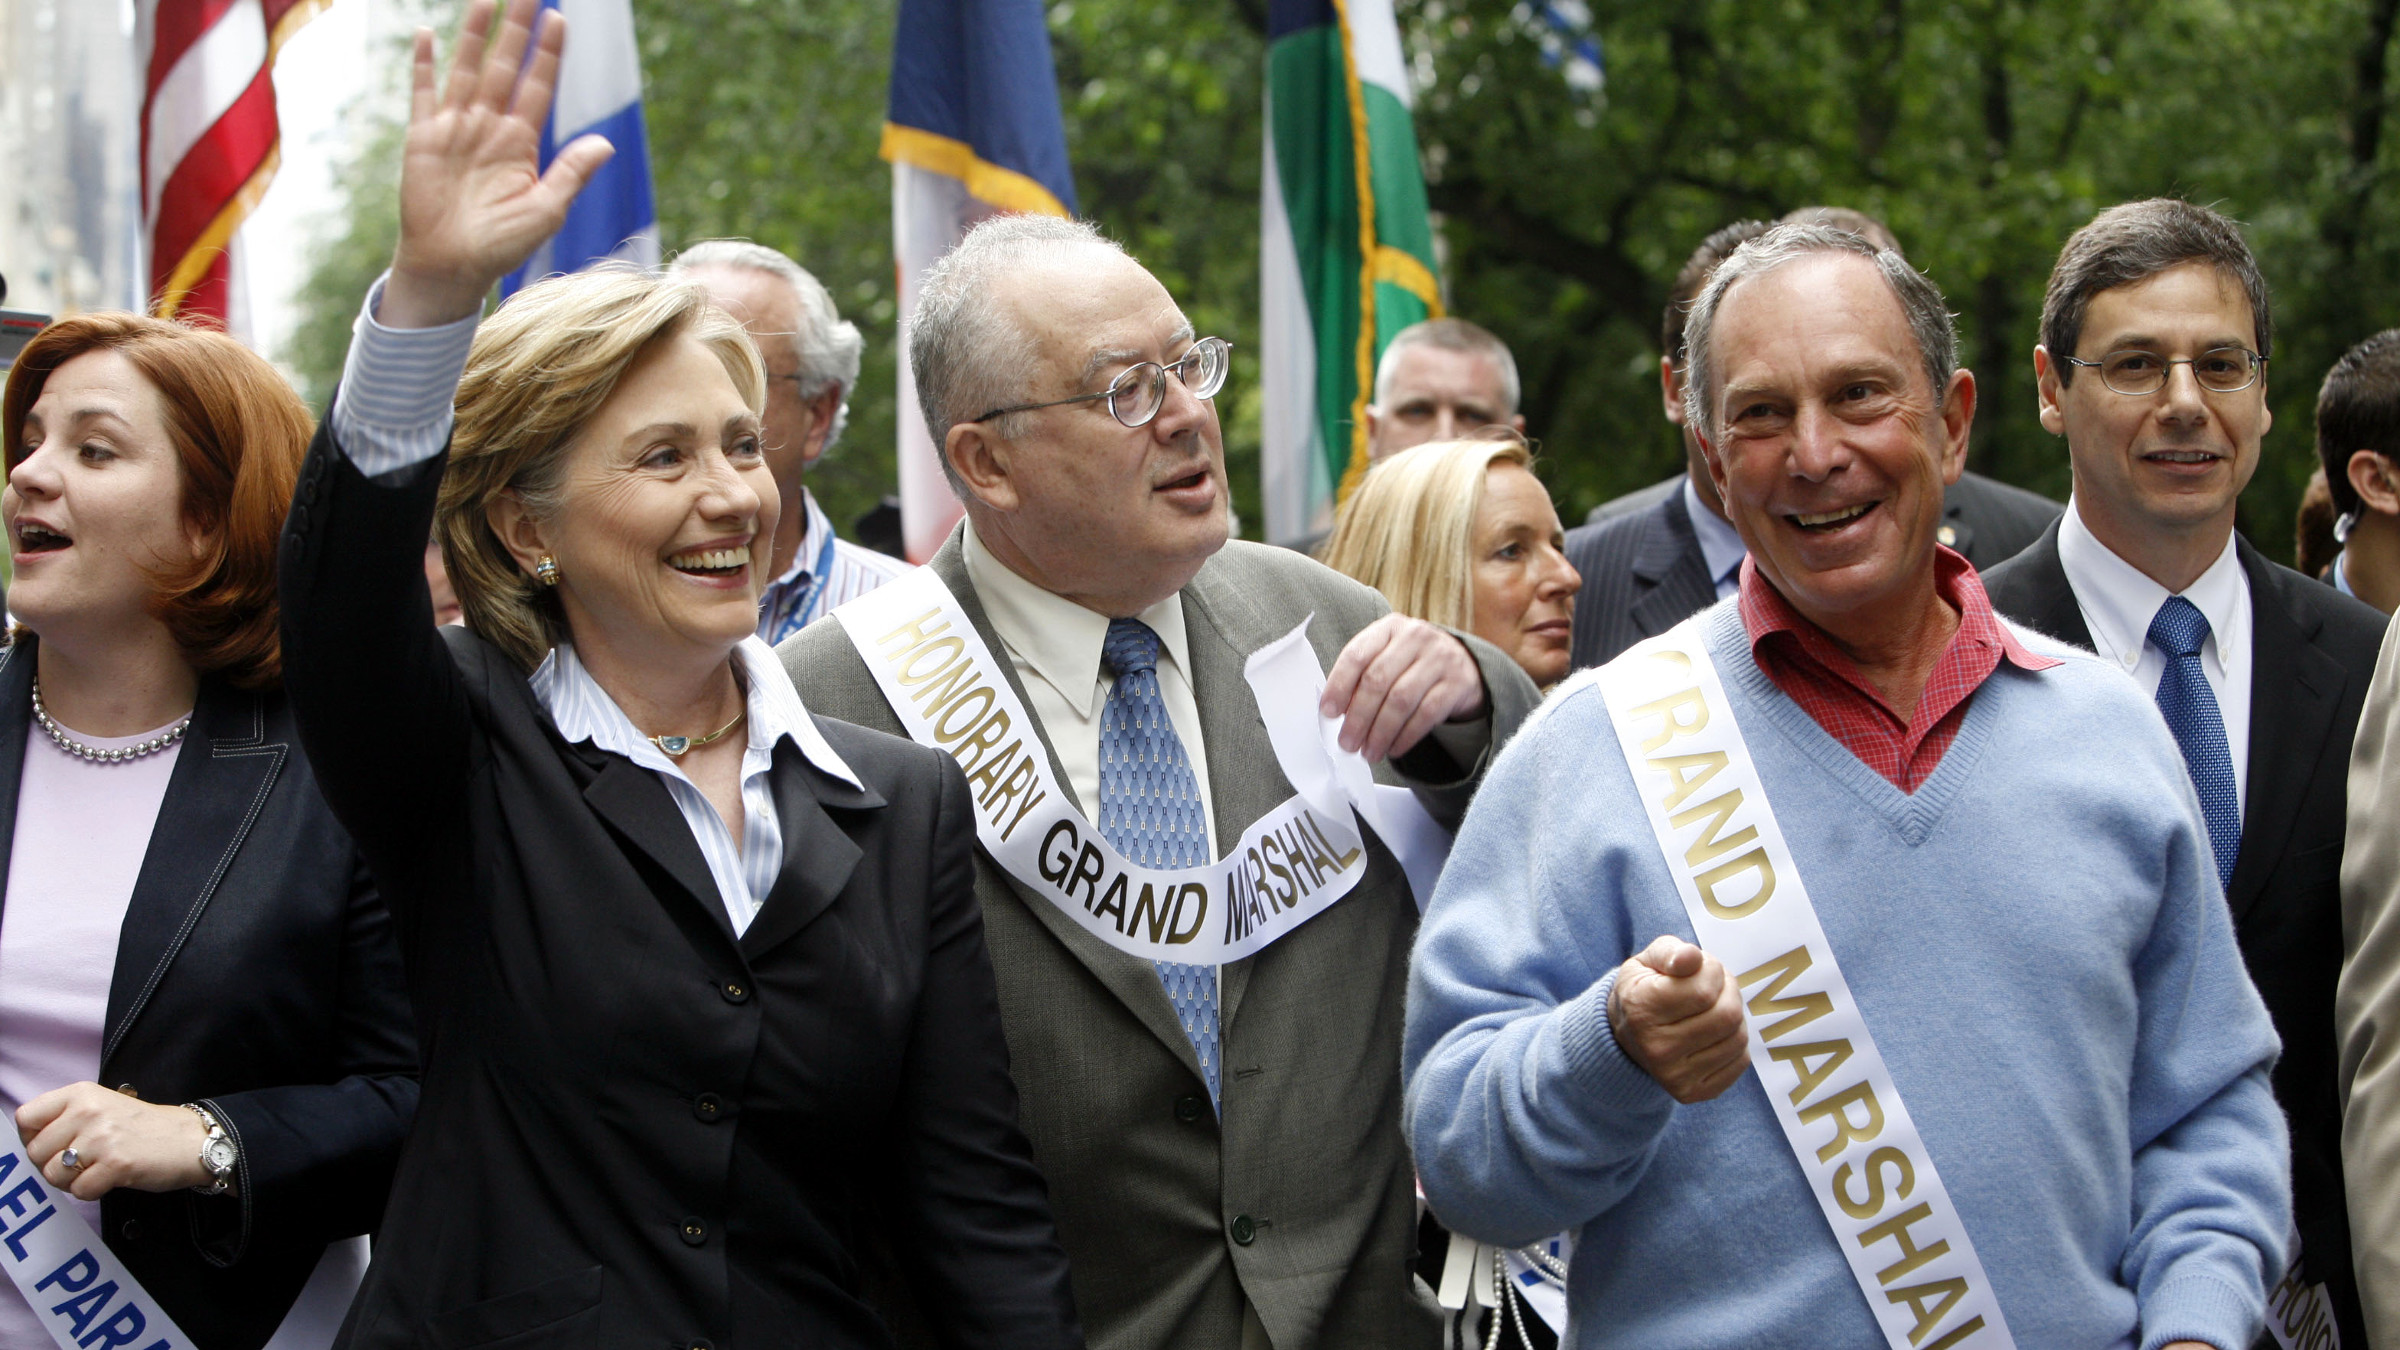 Sen. Hillary Rodham Clinton, D-N.Y., second left, New York City Mayor Michael Bloomberg, second from right, and New York's Israeli Consul General Aryeh Mekel, center, march in the Salute to Israel Day Parade, Sunday, June 4, 2006, along Fifth Avenue in New York.